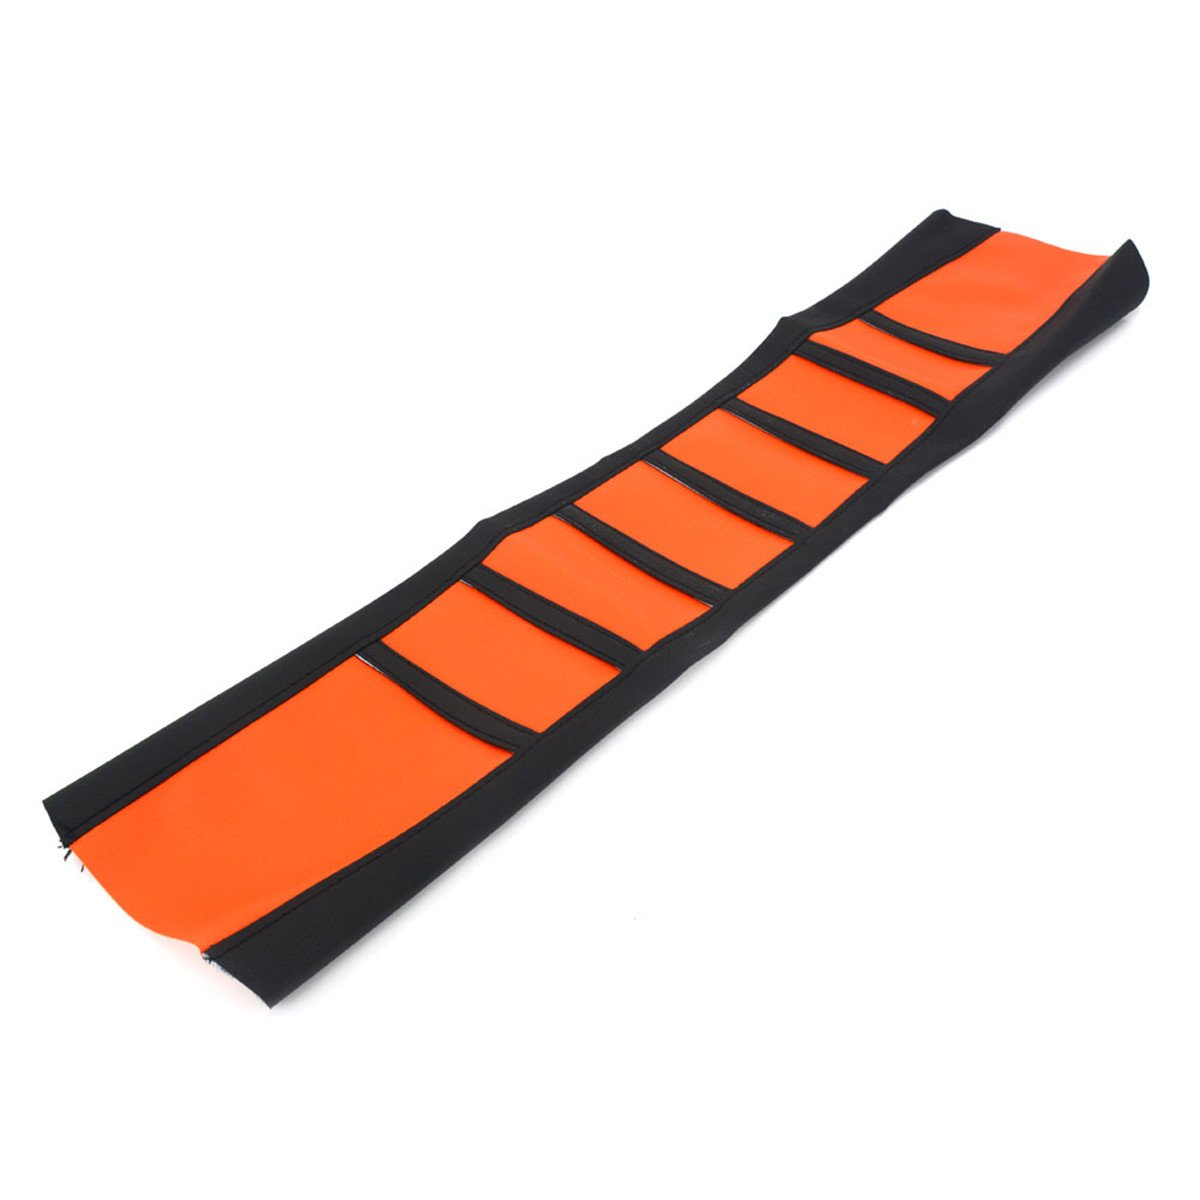 Alamor Universal Soft Gripper Funda De Asiento De Motocicleta Costilla De Caucho Dirt Bike Enduro-Orange